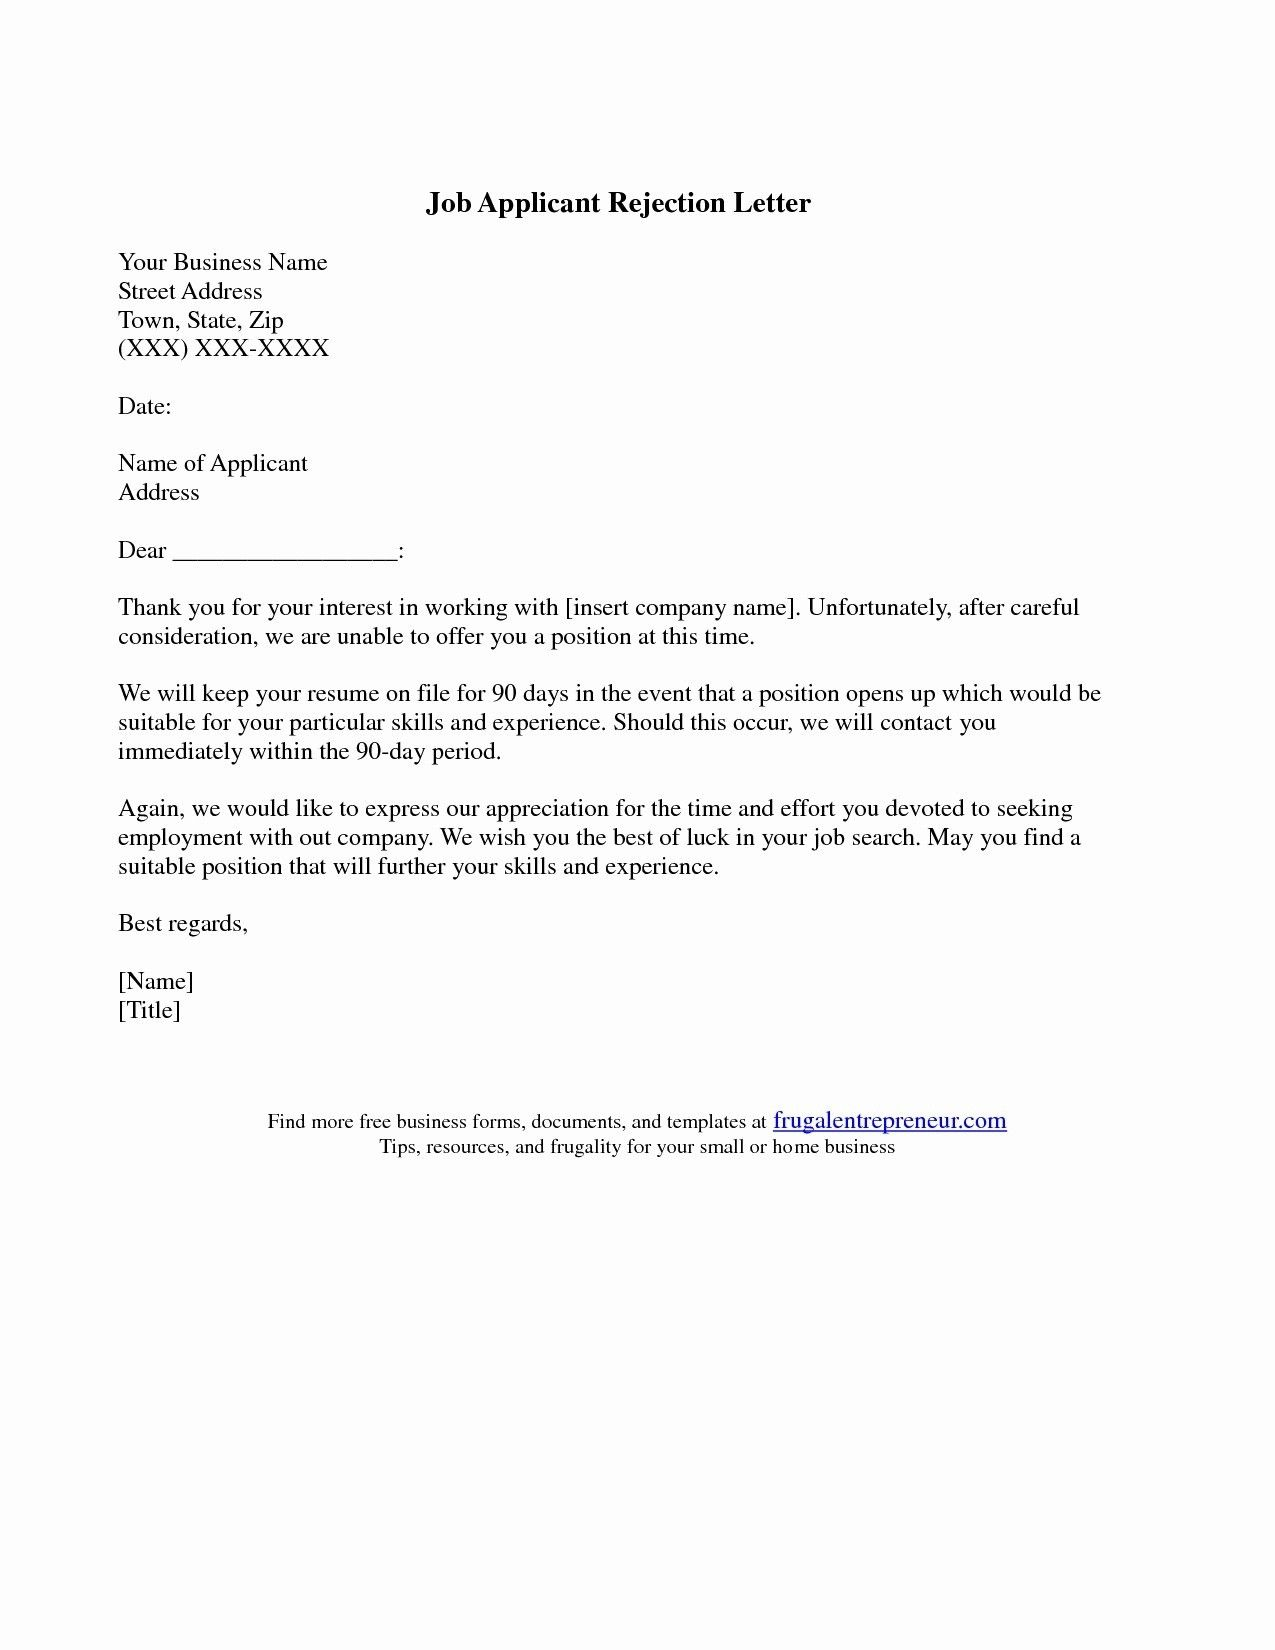 New Job Rejection Letter Template Reference Page For Resume